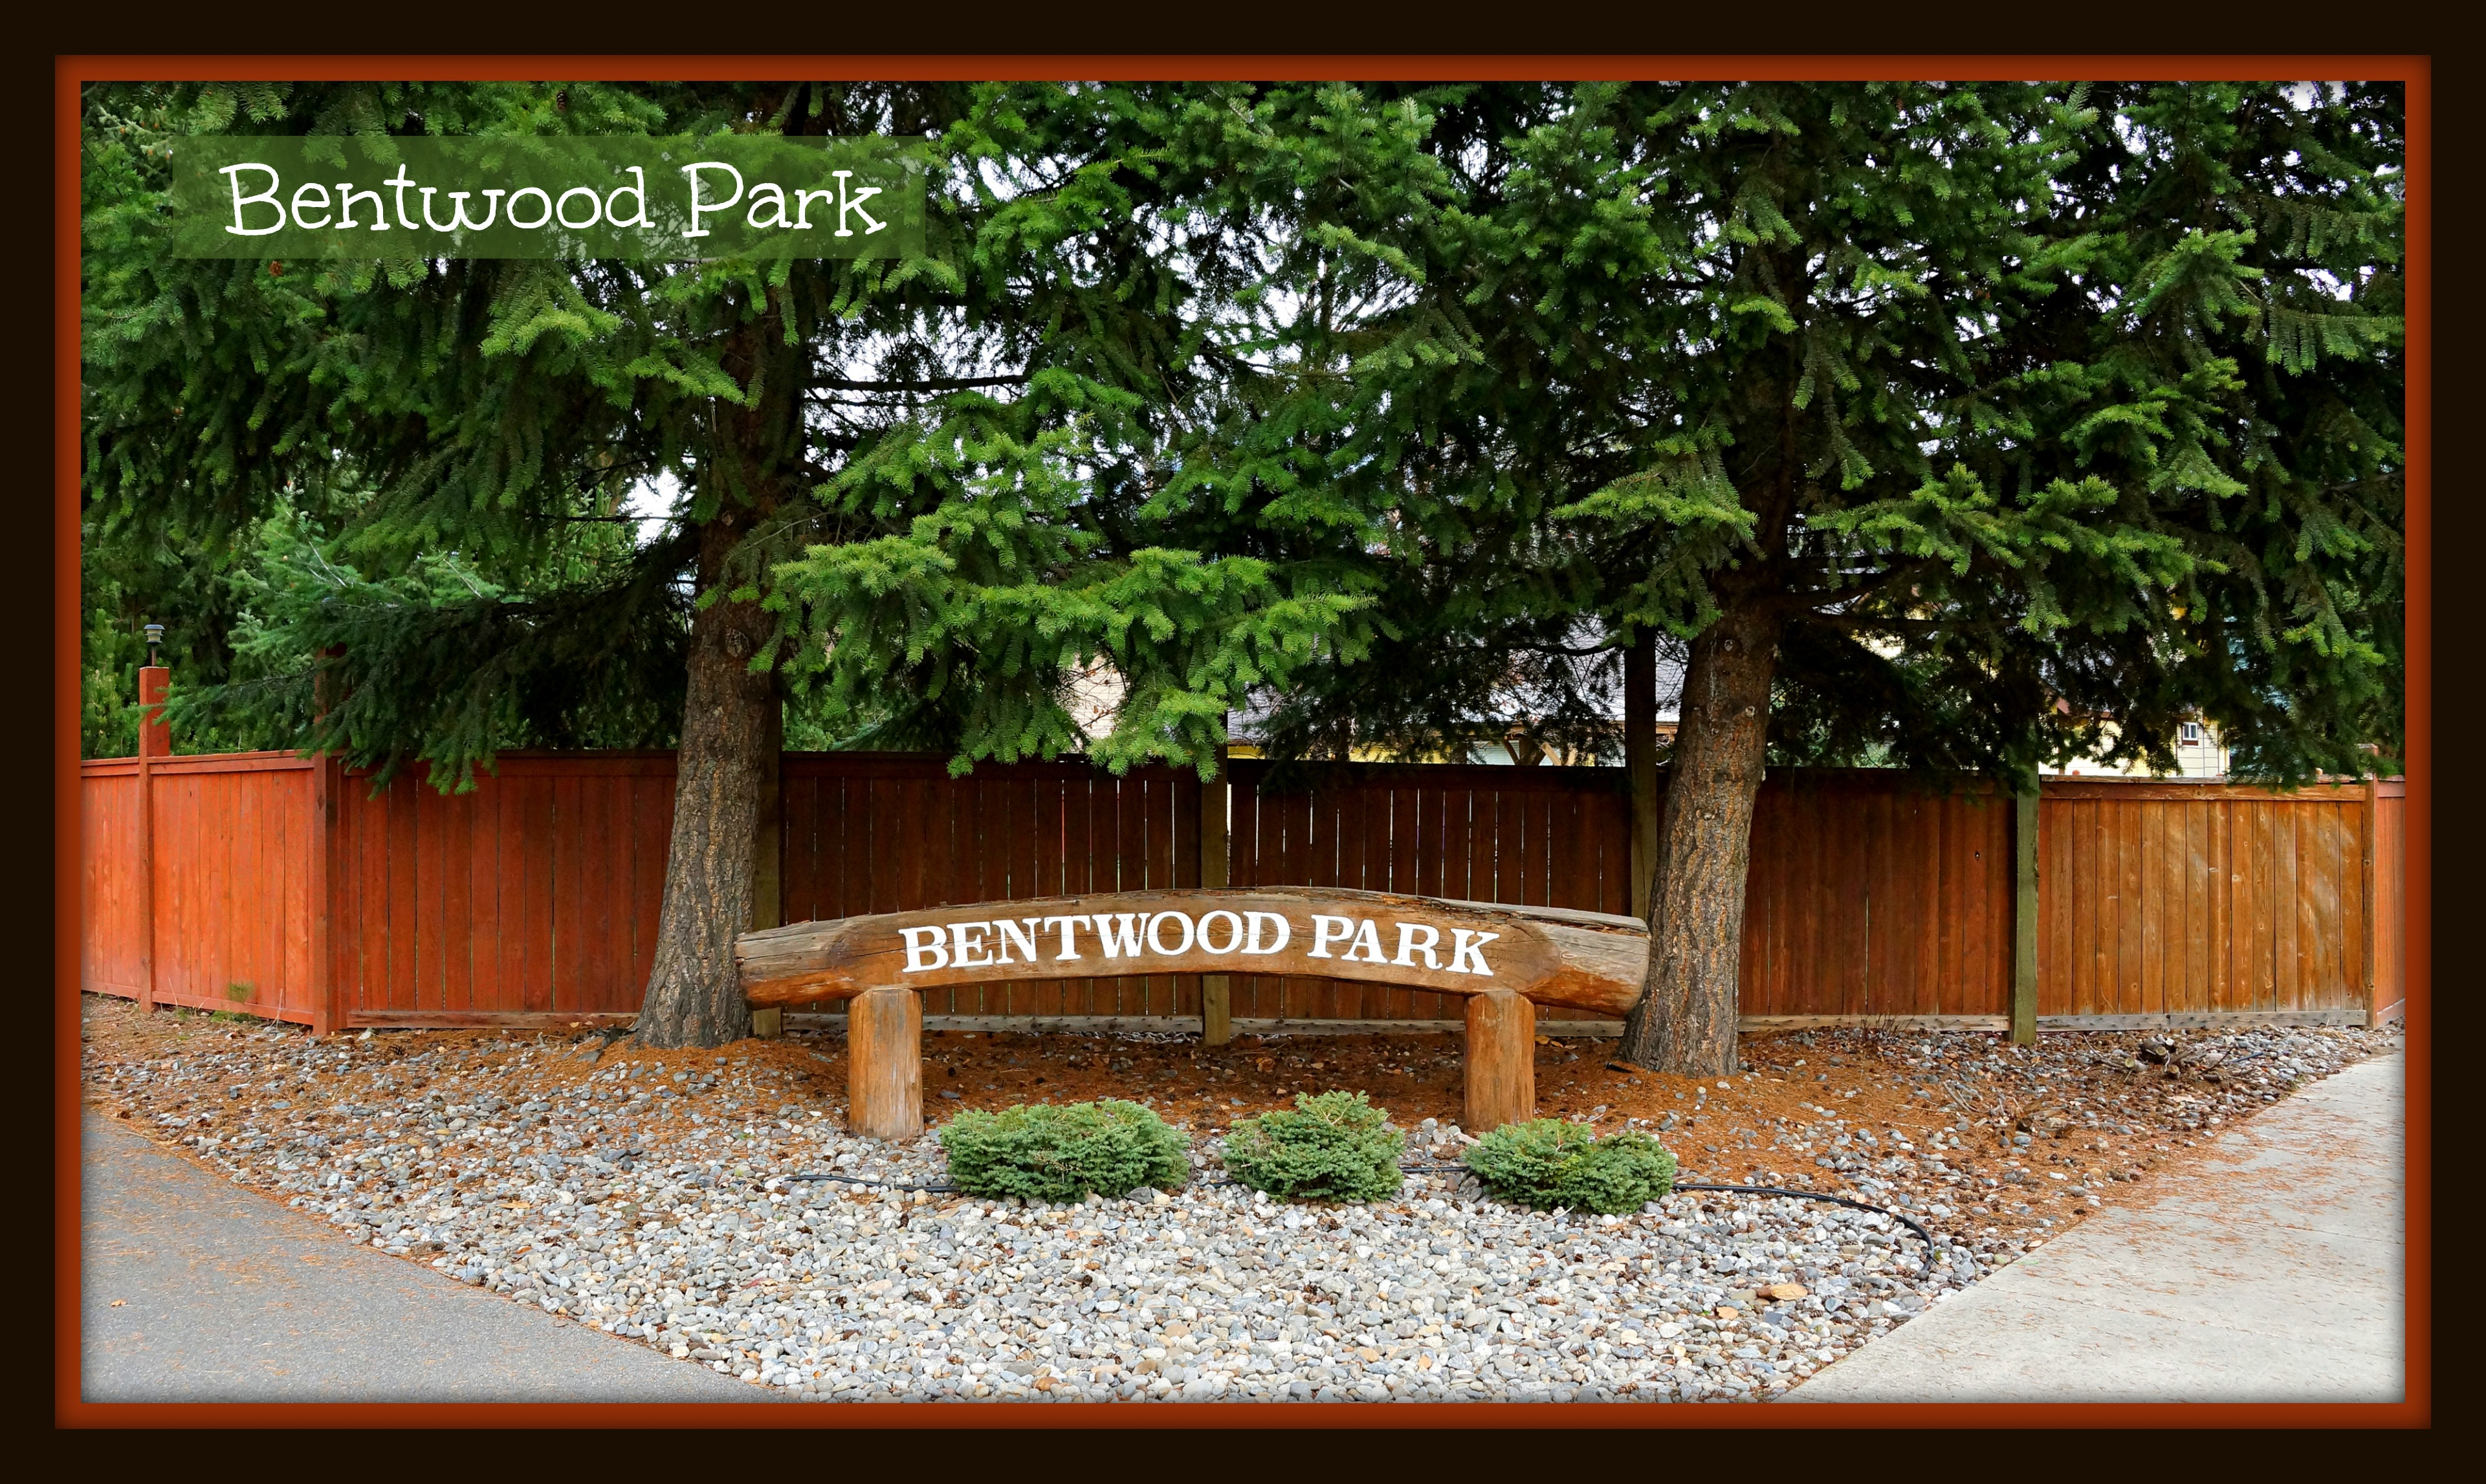 where is Bentwood park